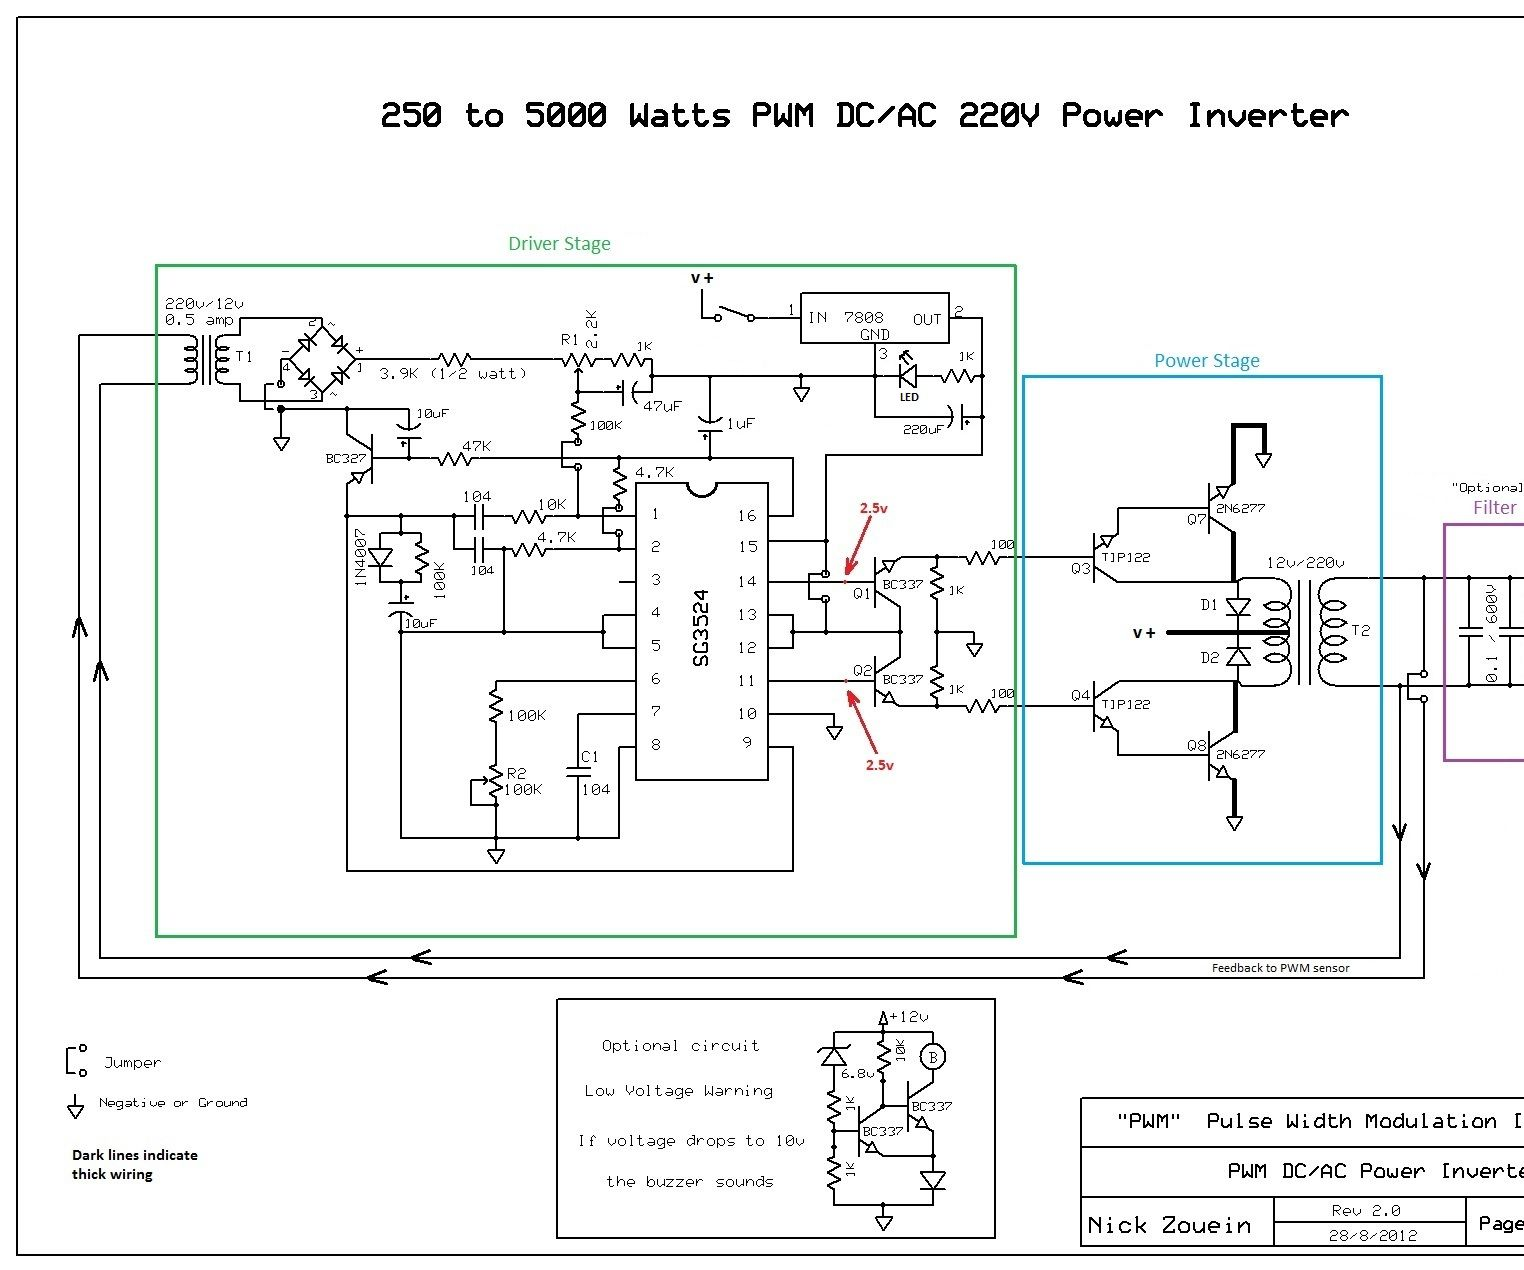 medium resolution of 250 to 5000 watts pwm dc ac 220v power inverter ac inverter circuit diagram likewise solar panel micro inverter wiring